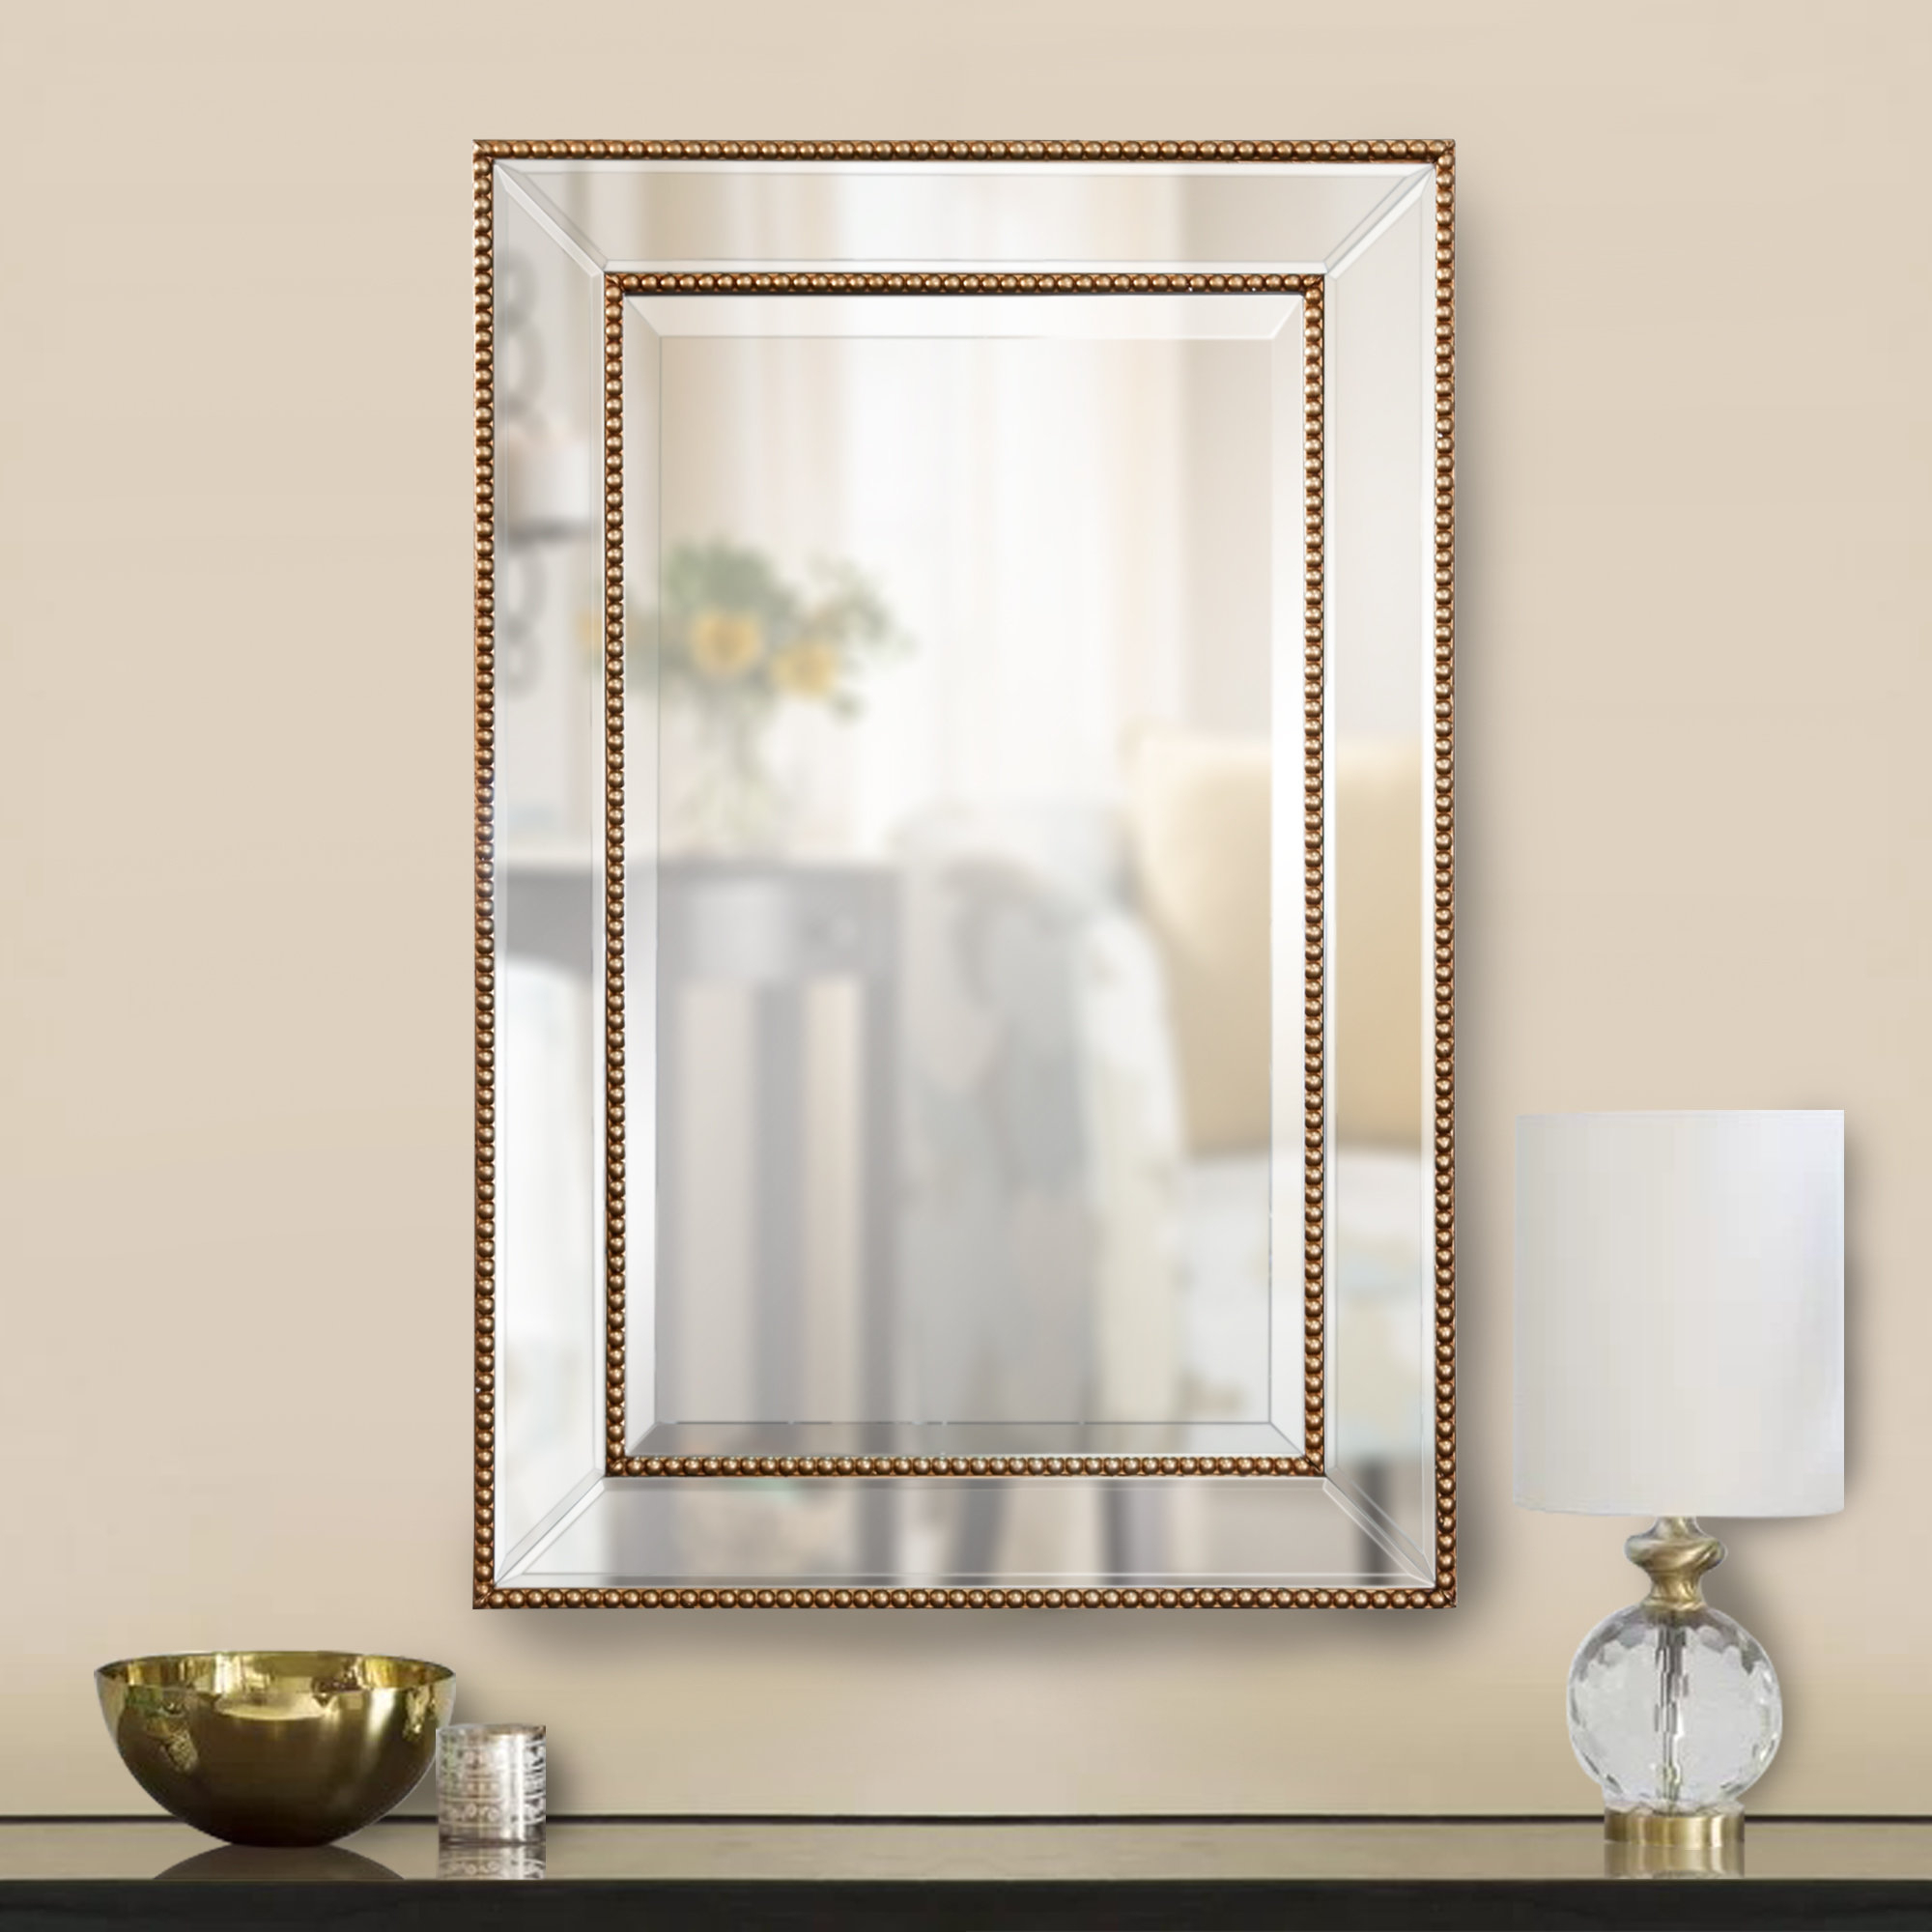 Clarine Beaded Wall Mirror Inside Lake Park Beveled Beaded Accent Wall Mirrors (View 3 of 20)